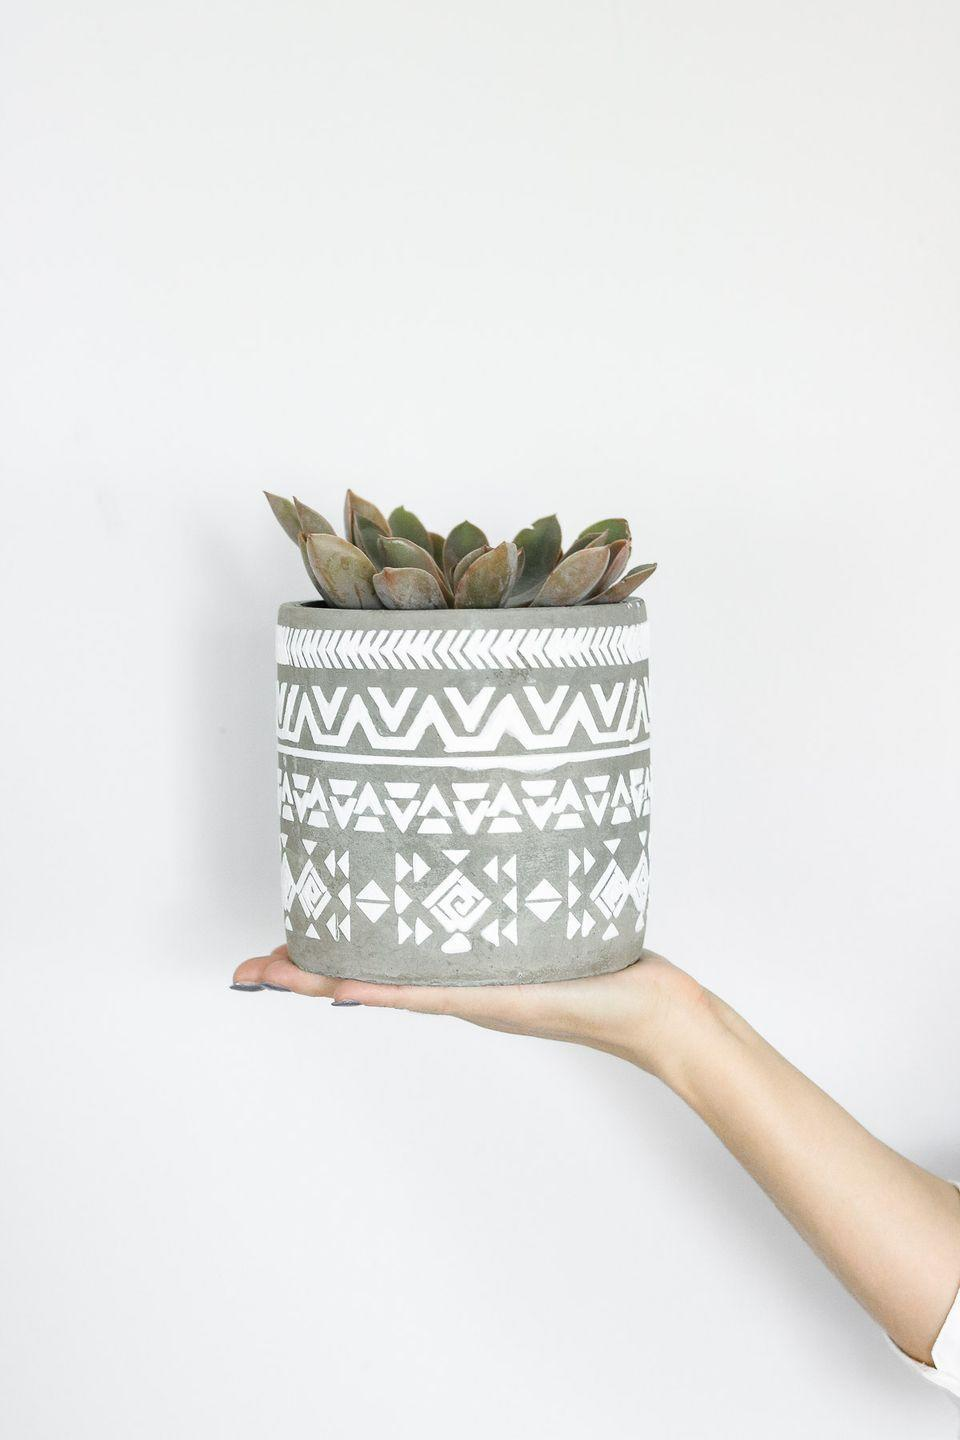 """<p>You can make a planter that looks modern with the help of modeling paste, a stencil, and some tape—and you can do it all for around $10!</p><p><strong>Get the tutorial at <a href=""""https://www.lilyardor.com/diy-3d-stenciled-planter/"""" rel=""""nofollow noopener"""" target=""""_blank"""" data-ylk=""""slk:Lily Ardor"""" class=""""link rapid-noclick-resp"""">Lily Ardor</a>.</strong></p><p><a class=""""link rapid-noclick-resp"""" href=""""https://go.redirectingat.com?id=74968X1596630&url=https%3A%2F%2Fwww.walmart.com%2Fip%2FU-S-Art-Supply-Modeling-Paste-Acrylic-Medium-500ml-Tub%2F439228409&sref=https%3A%2F%2Fwww.thepioneerwoman.com%2Fhome-lifestyle%2Fgardening%2Fg36556911%2Fdiy-planters%2F"""" rel=""""nofollow noopener"""" target=""""_blank"""" data-ylk=""""slk:SHOP MODELING PASTE"""">SHOP MODELING PASTE</a></p>"""